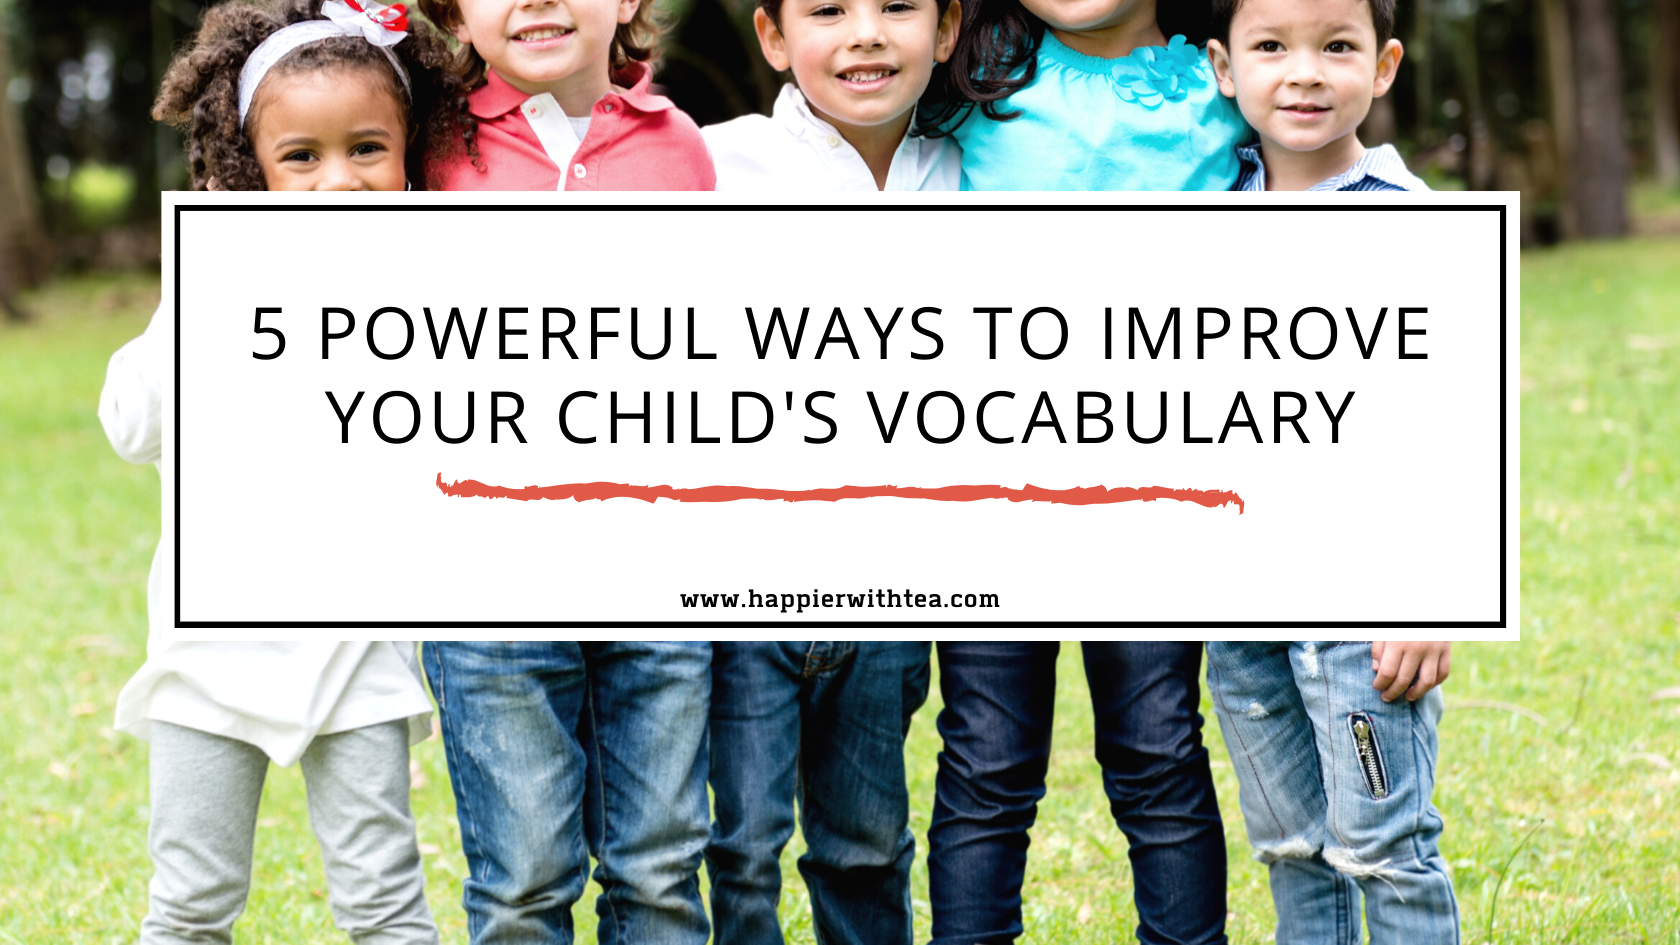 5 powerful ways to improve your child's vocabulary